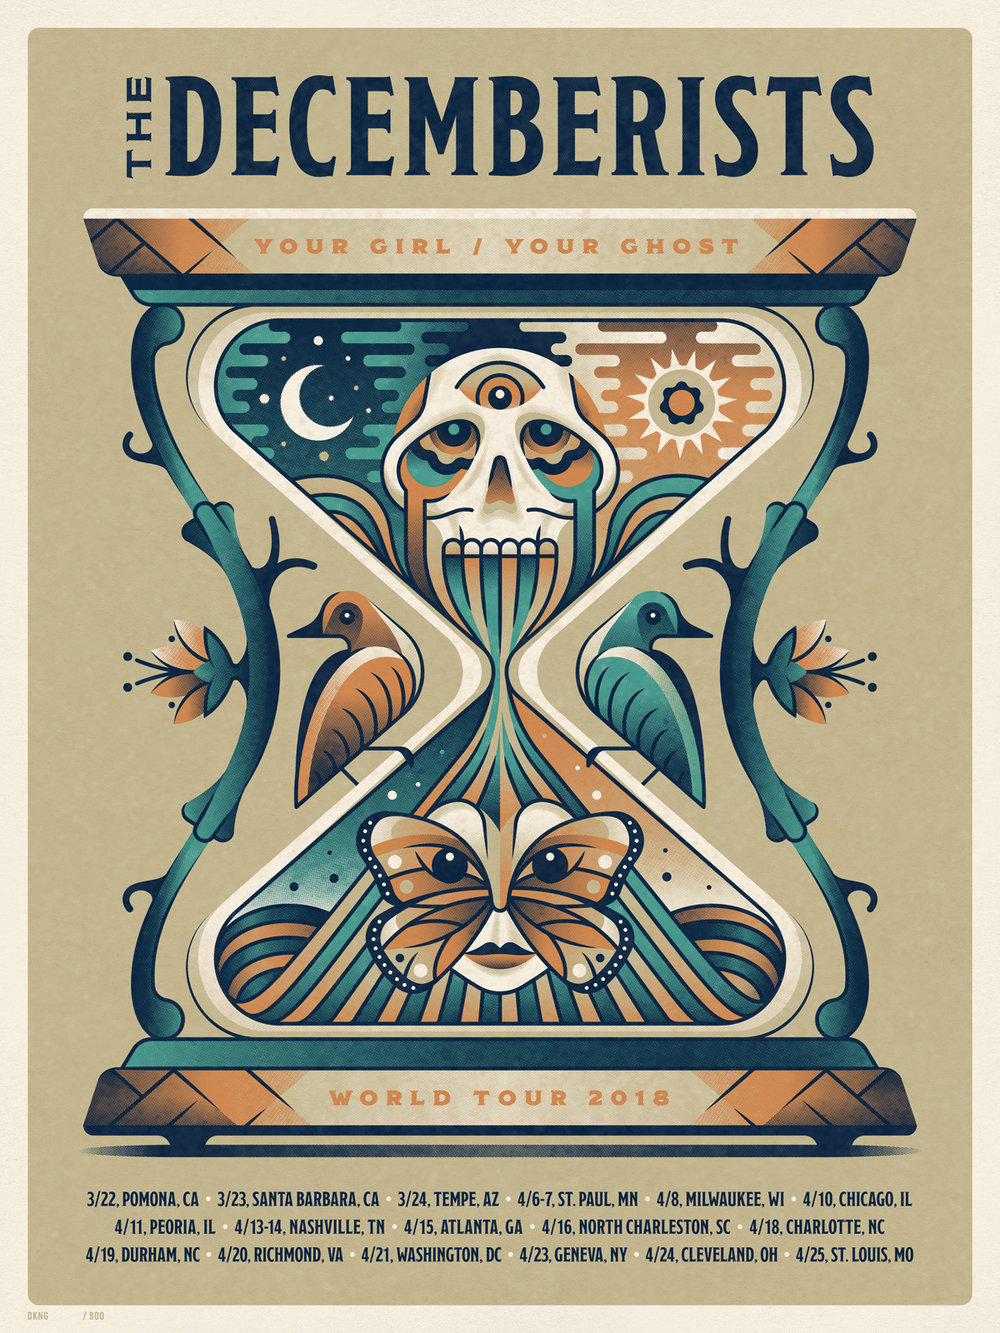 The+Decemberists+2018+Tour+Poster+by+DKNG.jpeg